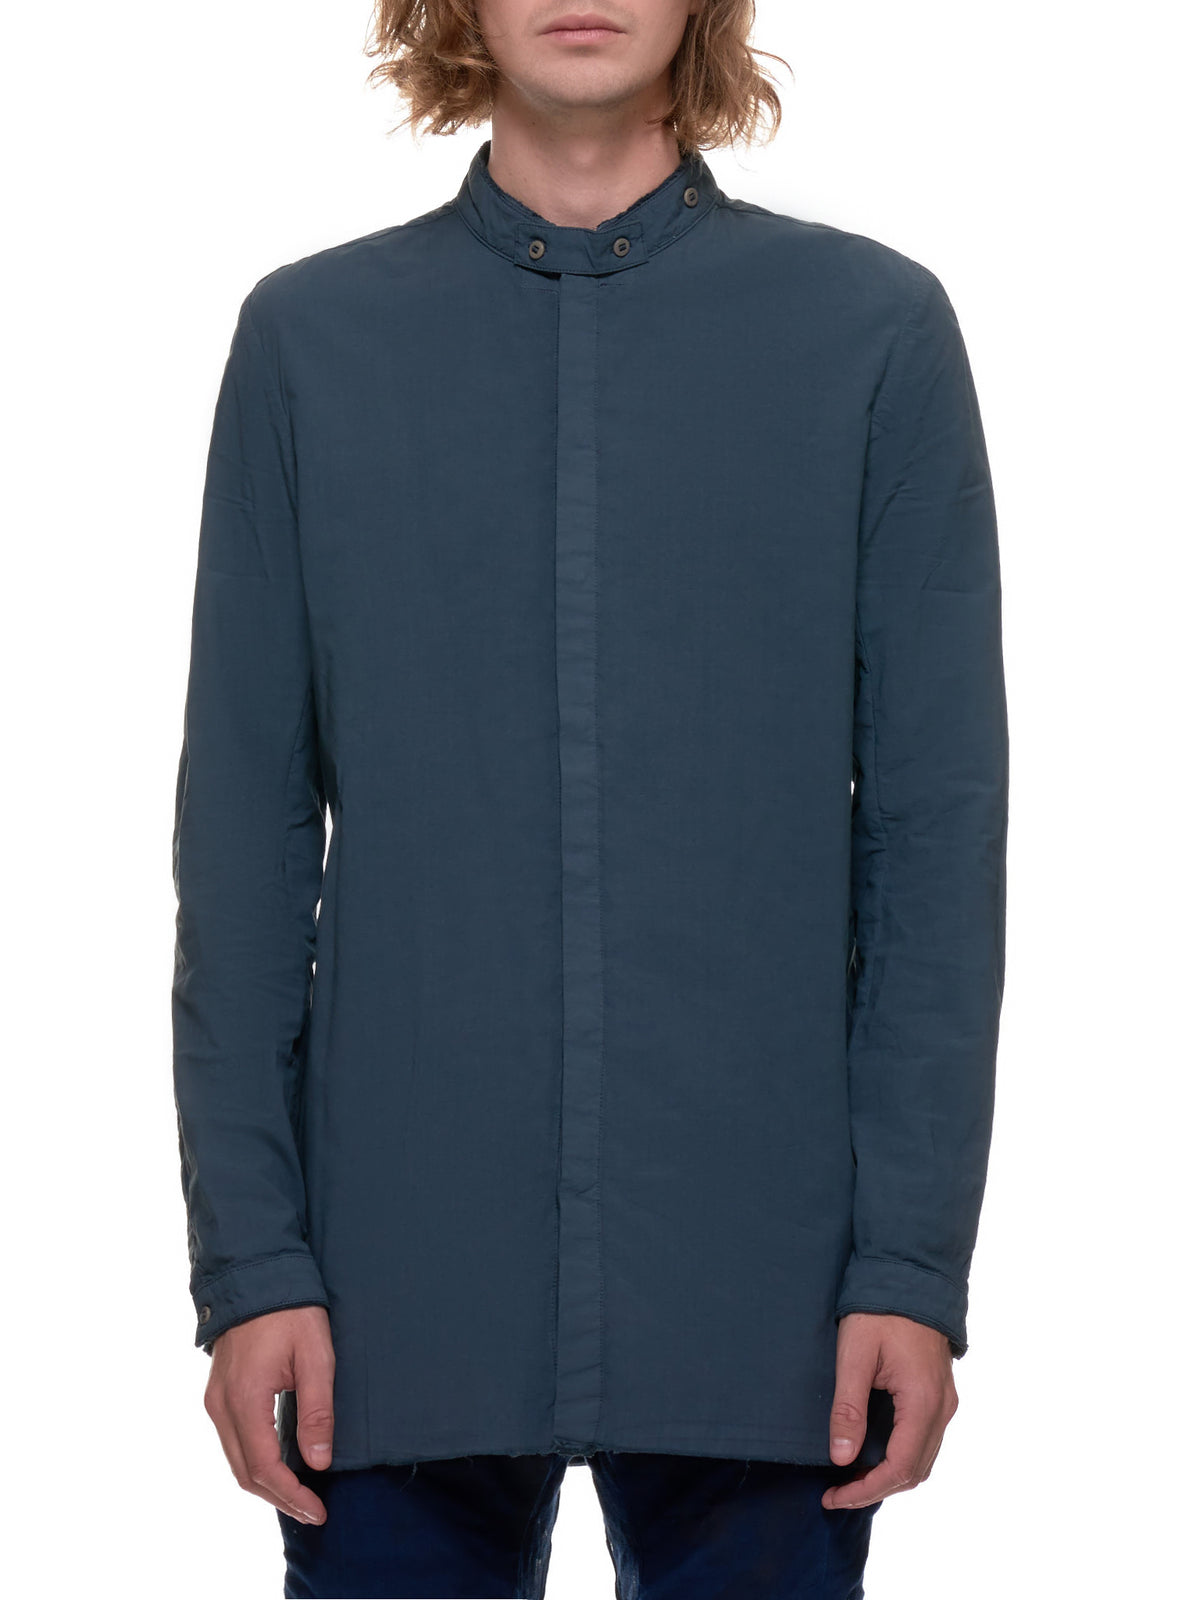 Bar Collar Shirt (SHIRT1-F1501M-SYNTH-BLUE)